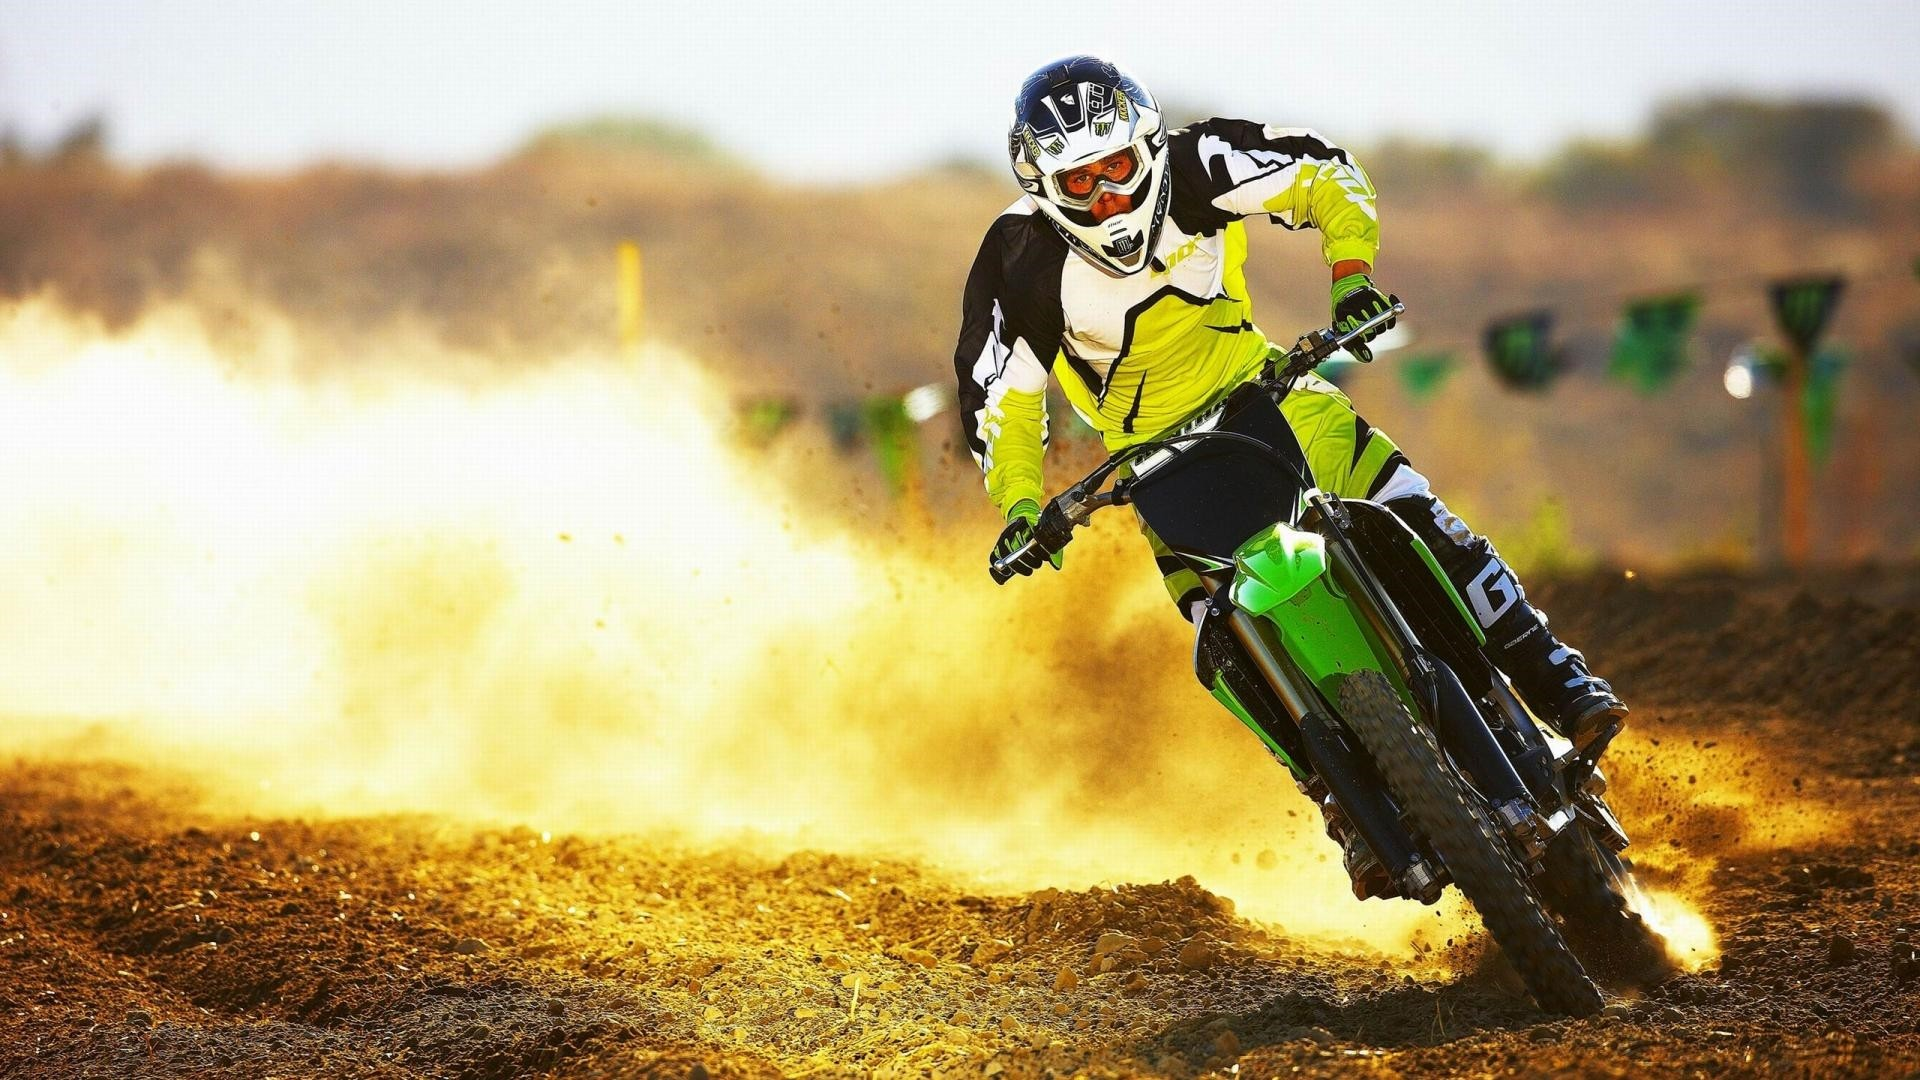 Dirt Bike PC Wallpaper HD